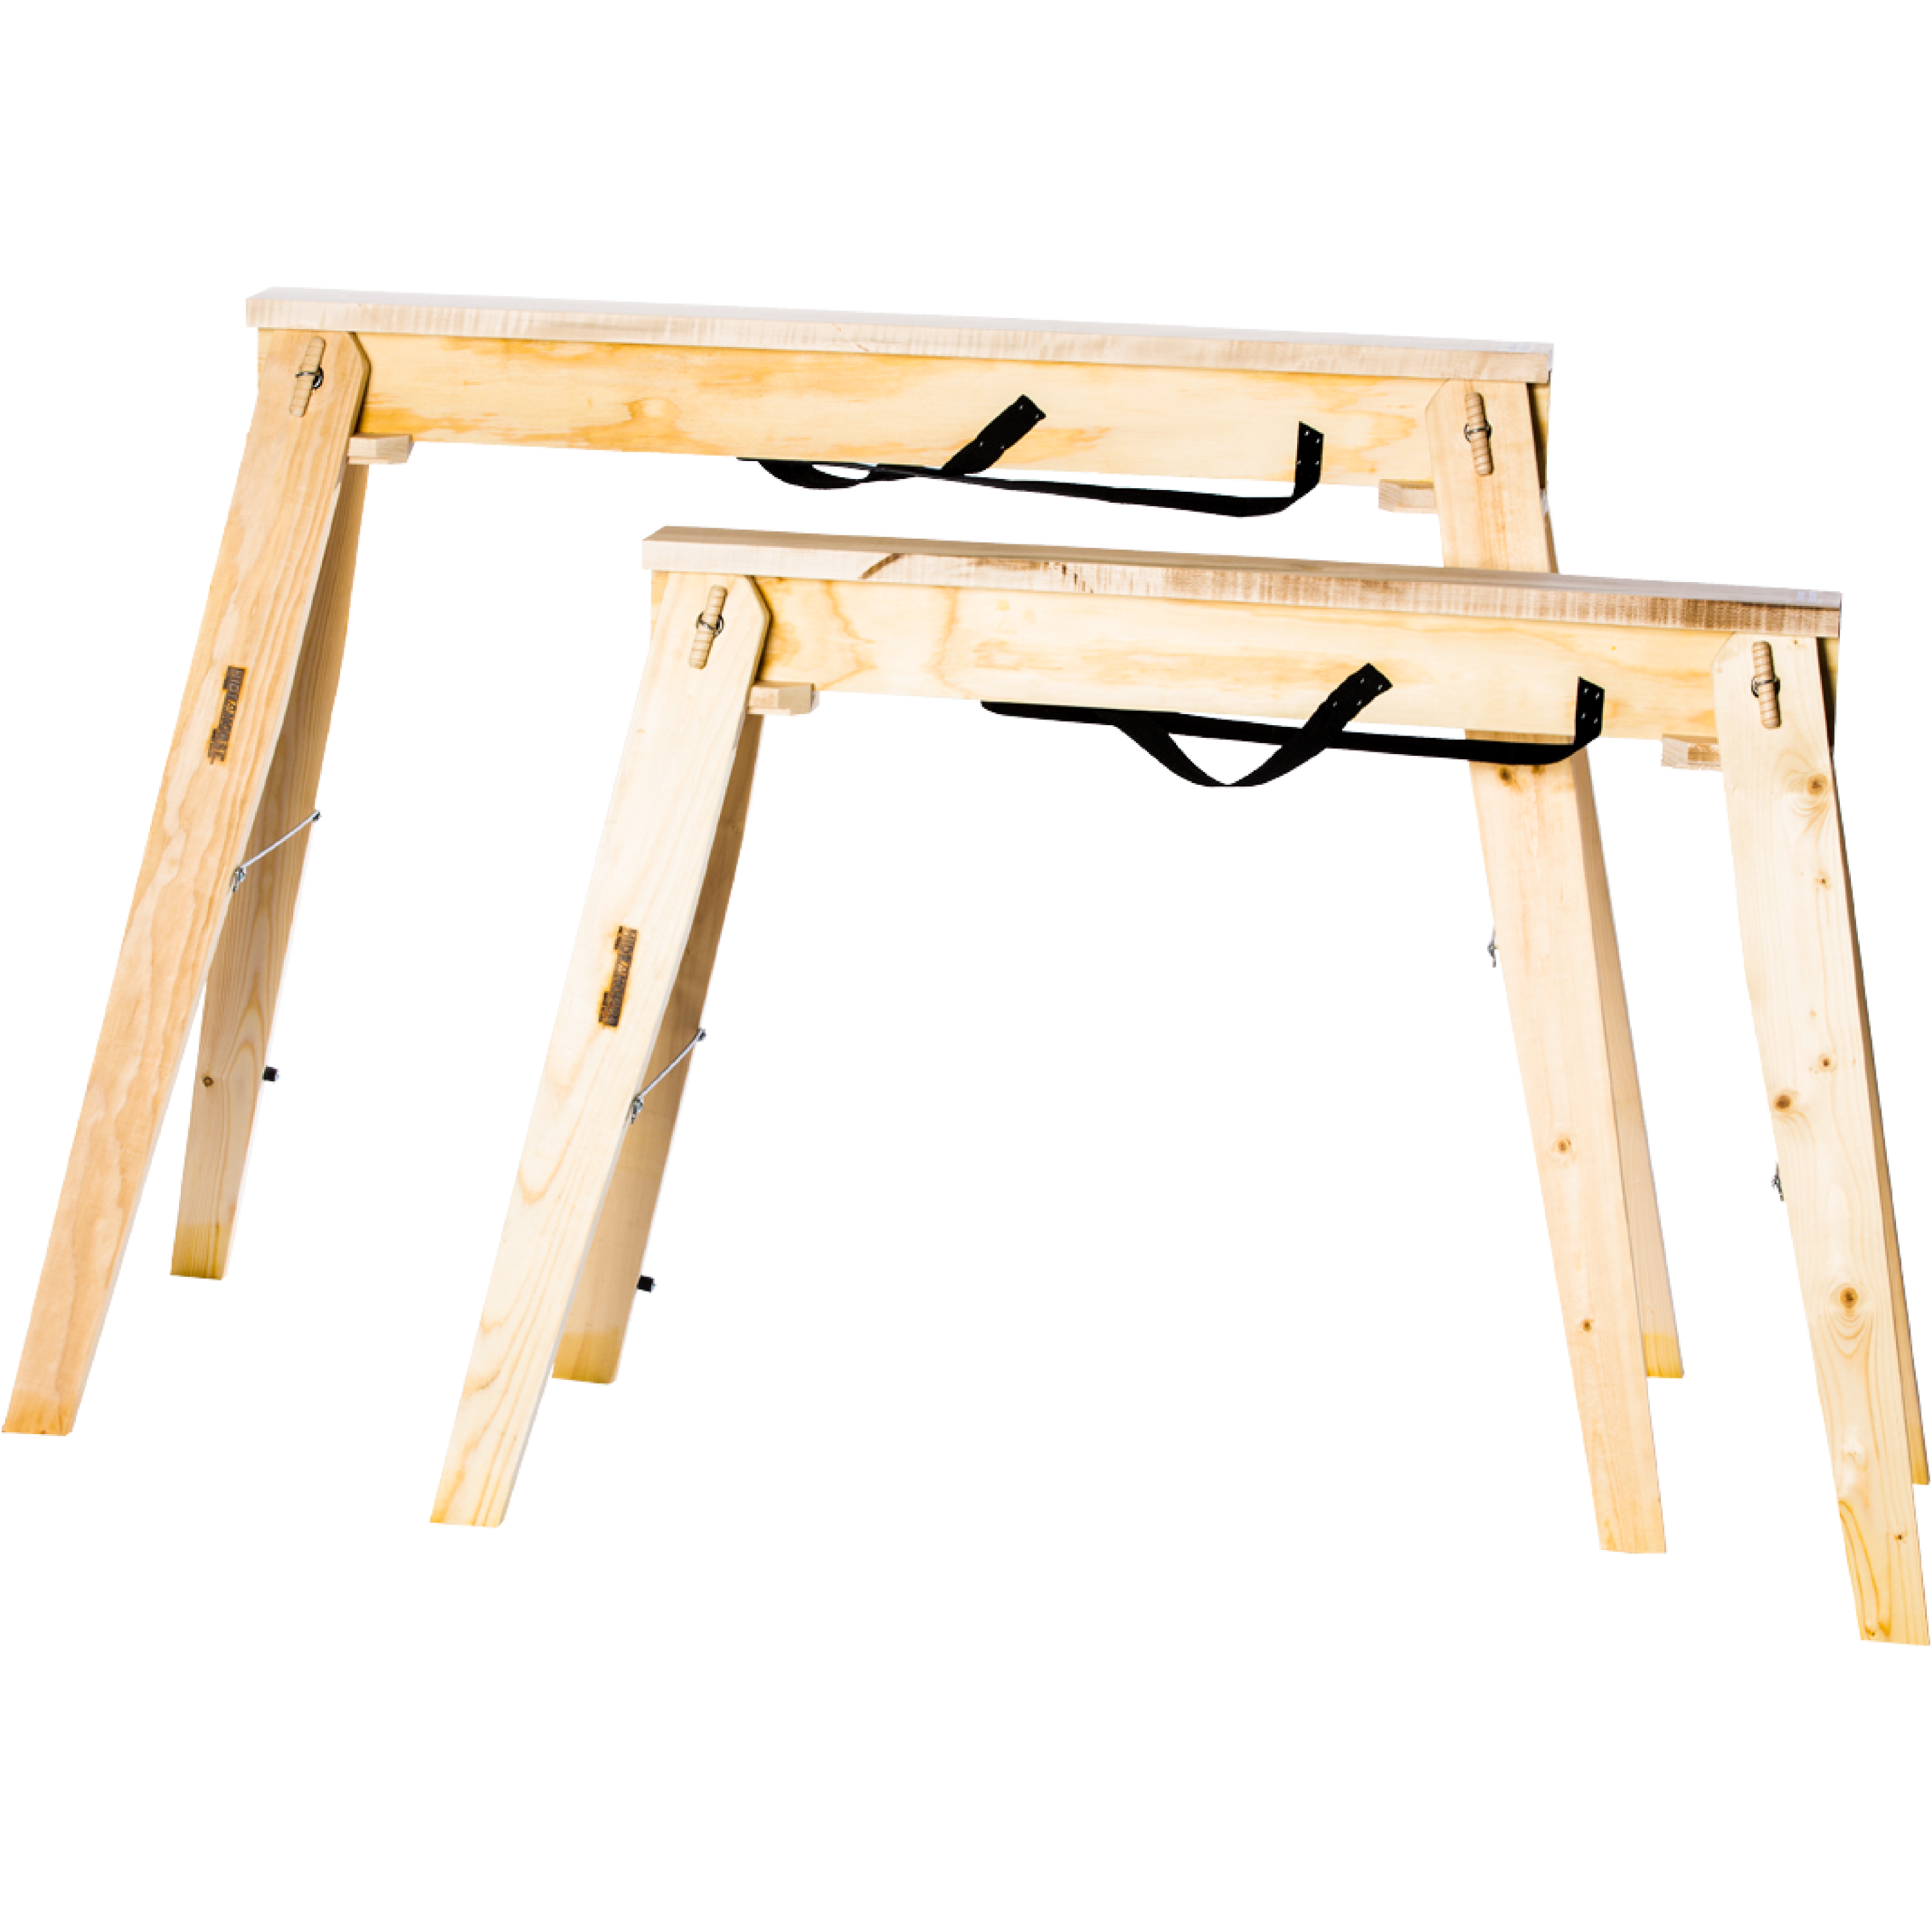 Tall and Standard Size Comparison of Hide-A-Horse Folding Sawhorses